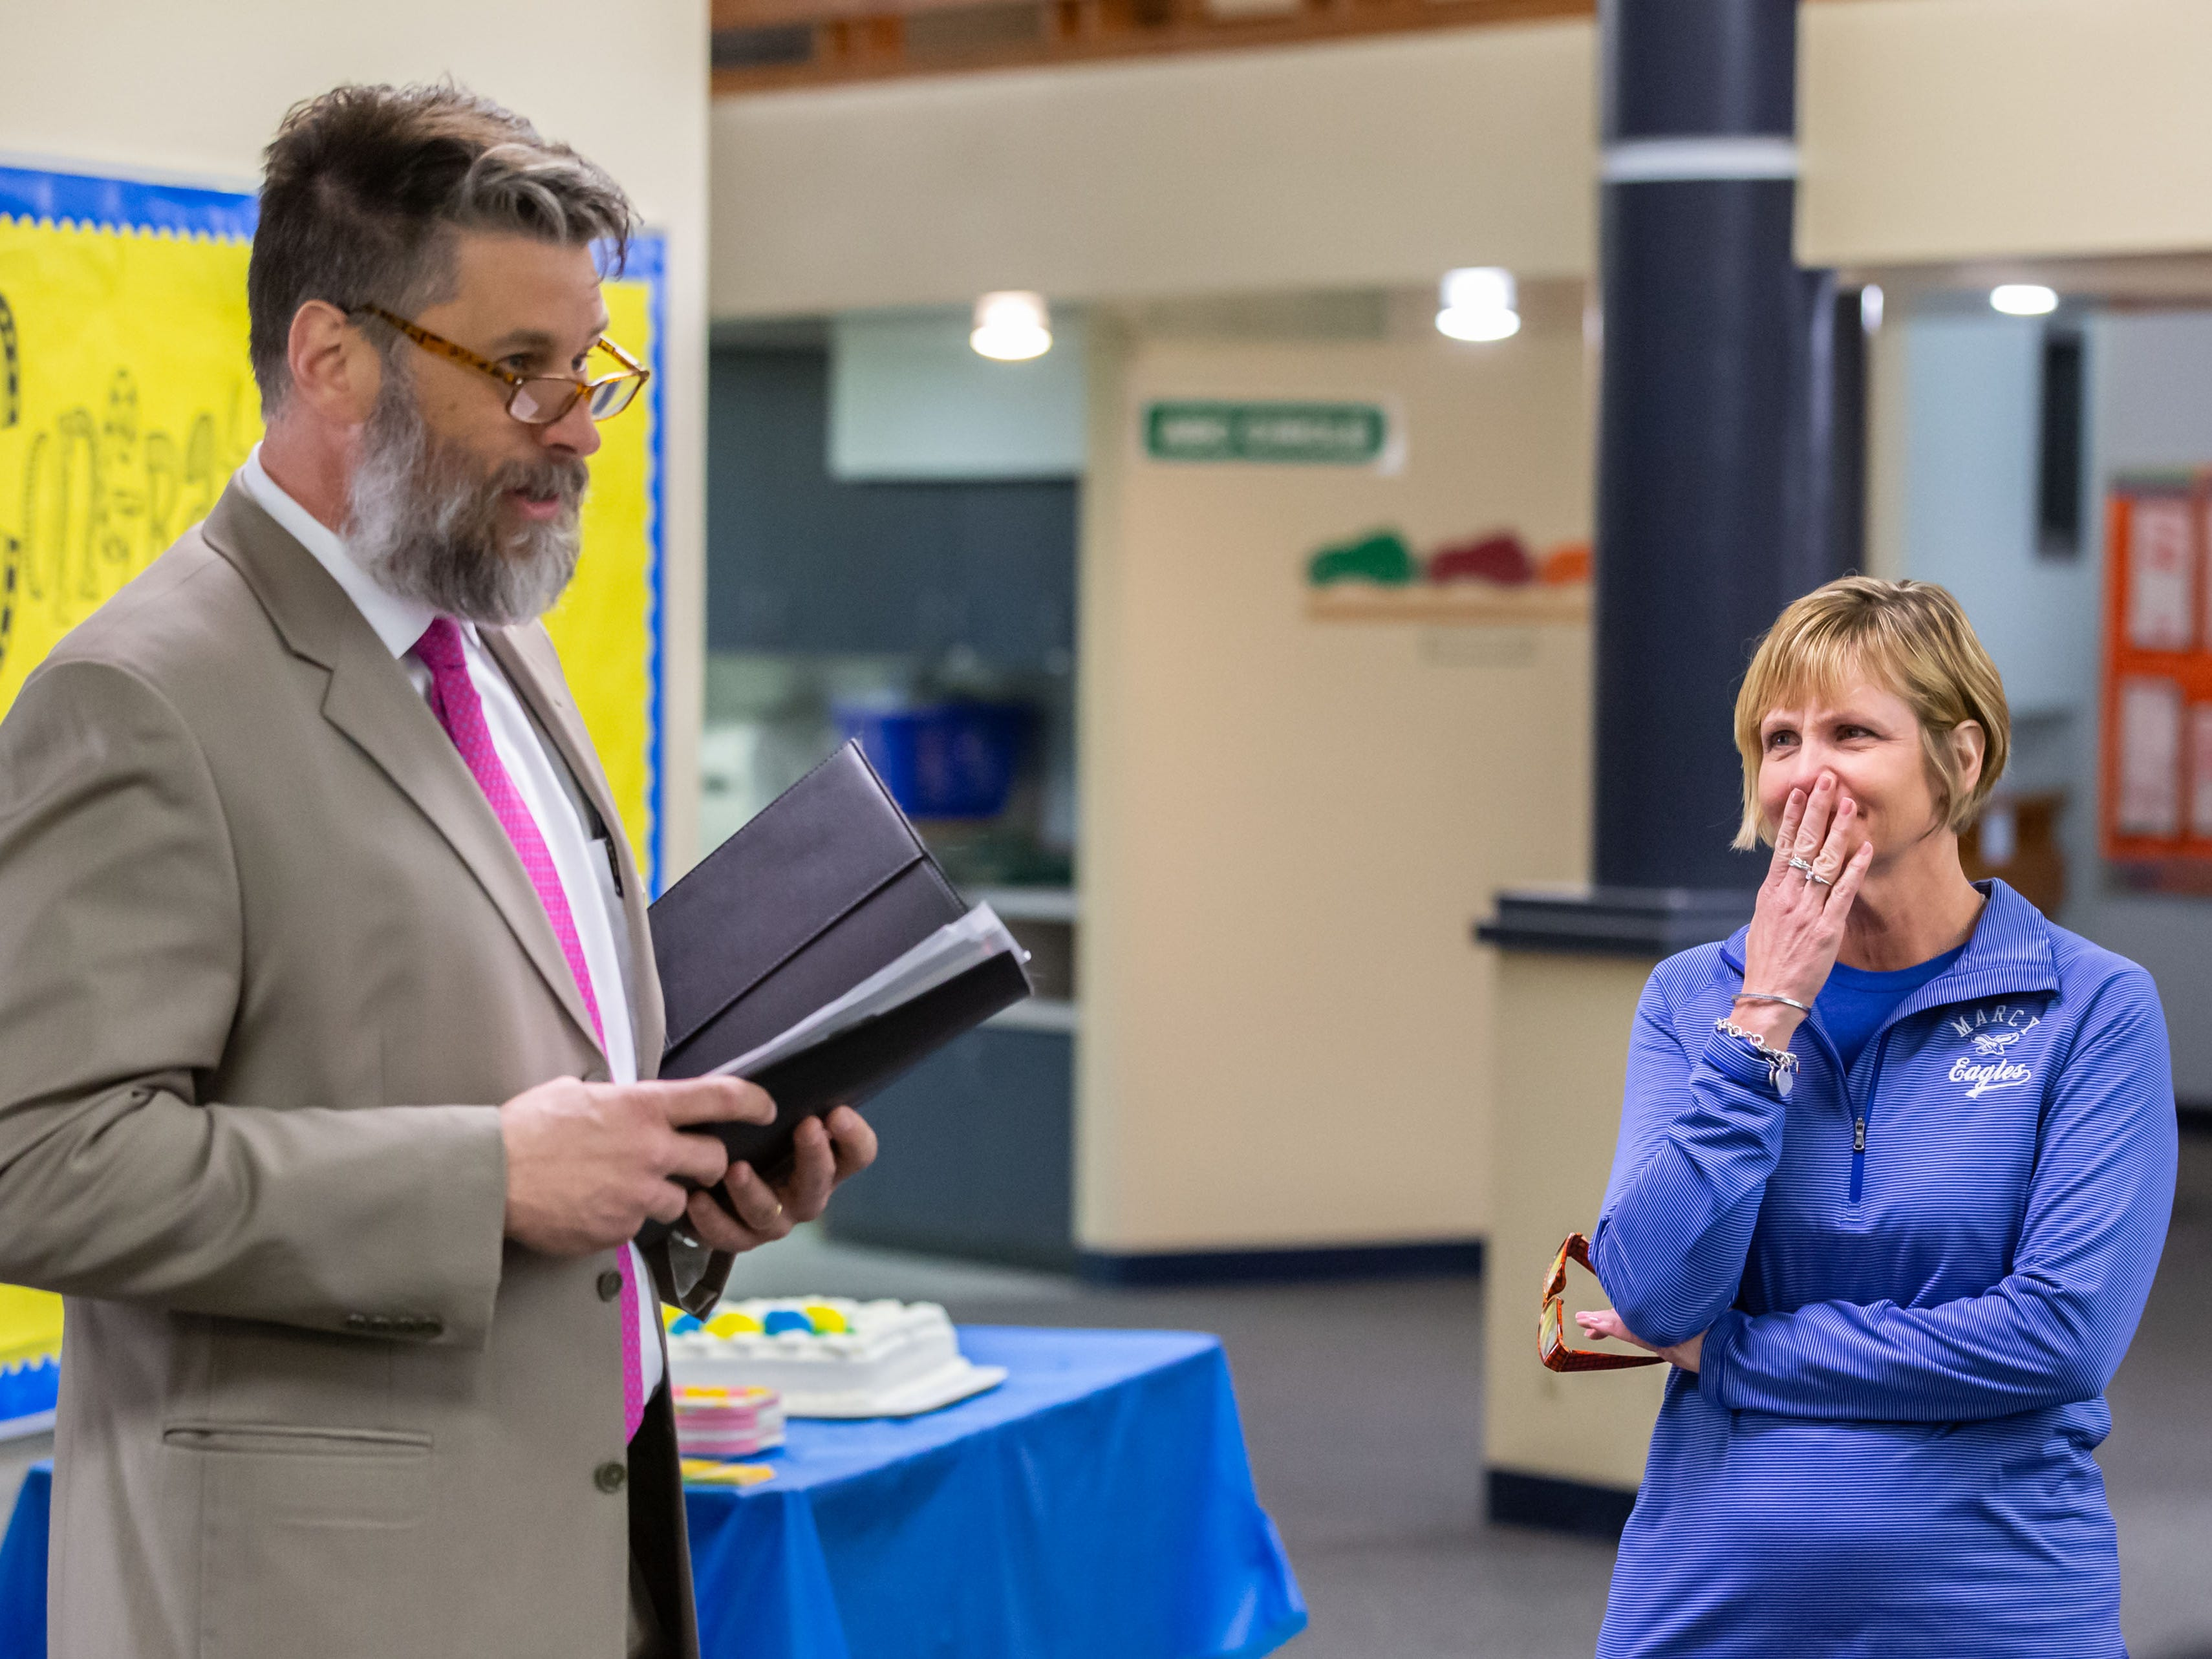 AWSA President Rick Flaherty surprises Marcy Elementary School Principal Michele Trawicki with the 2019 Wisconsin Elementary School Principal of the Year award from the Association of Wisconsin School Administrators (AWSA) at Marcy Elementary School in Menomonee Falls on Friday, April 5, 2019.